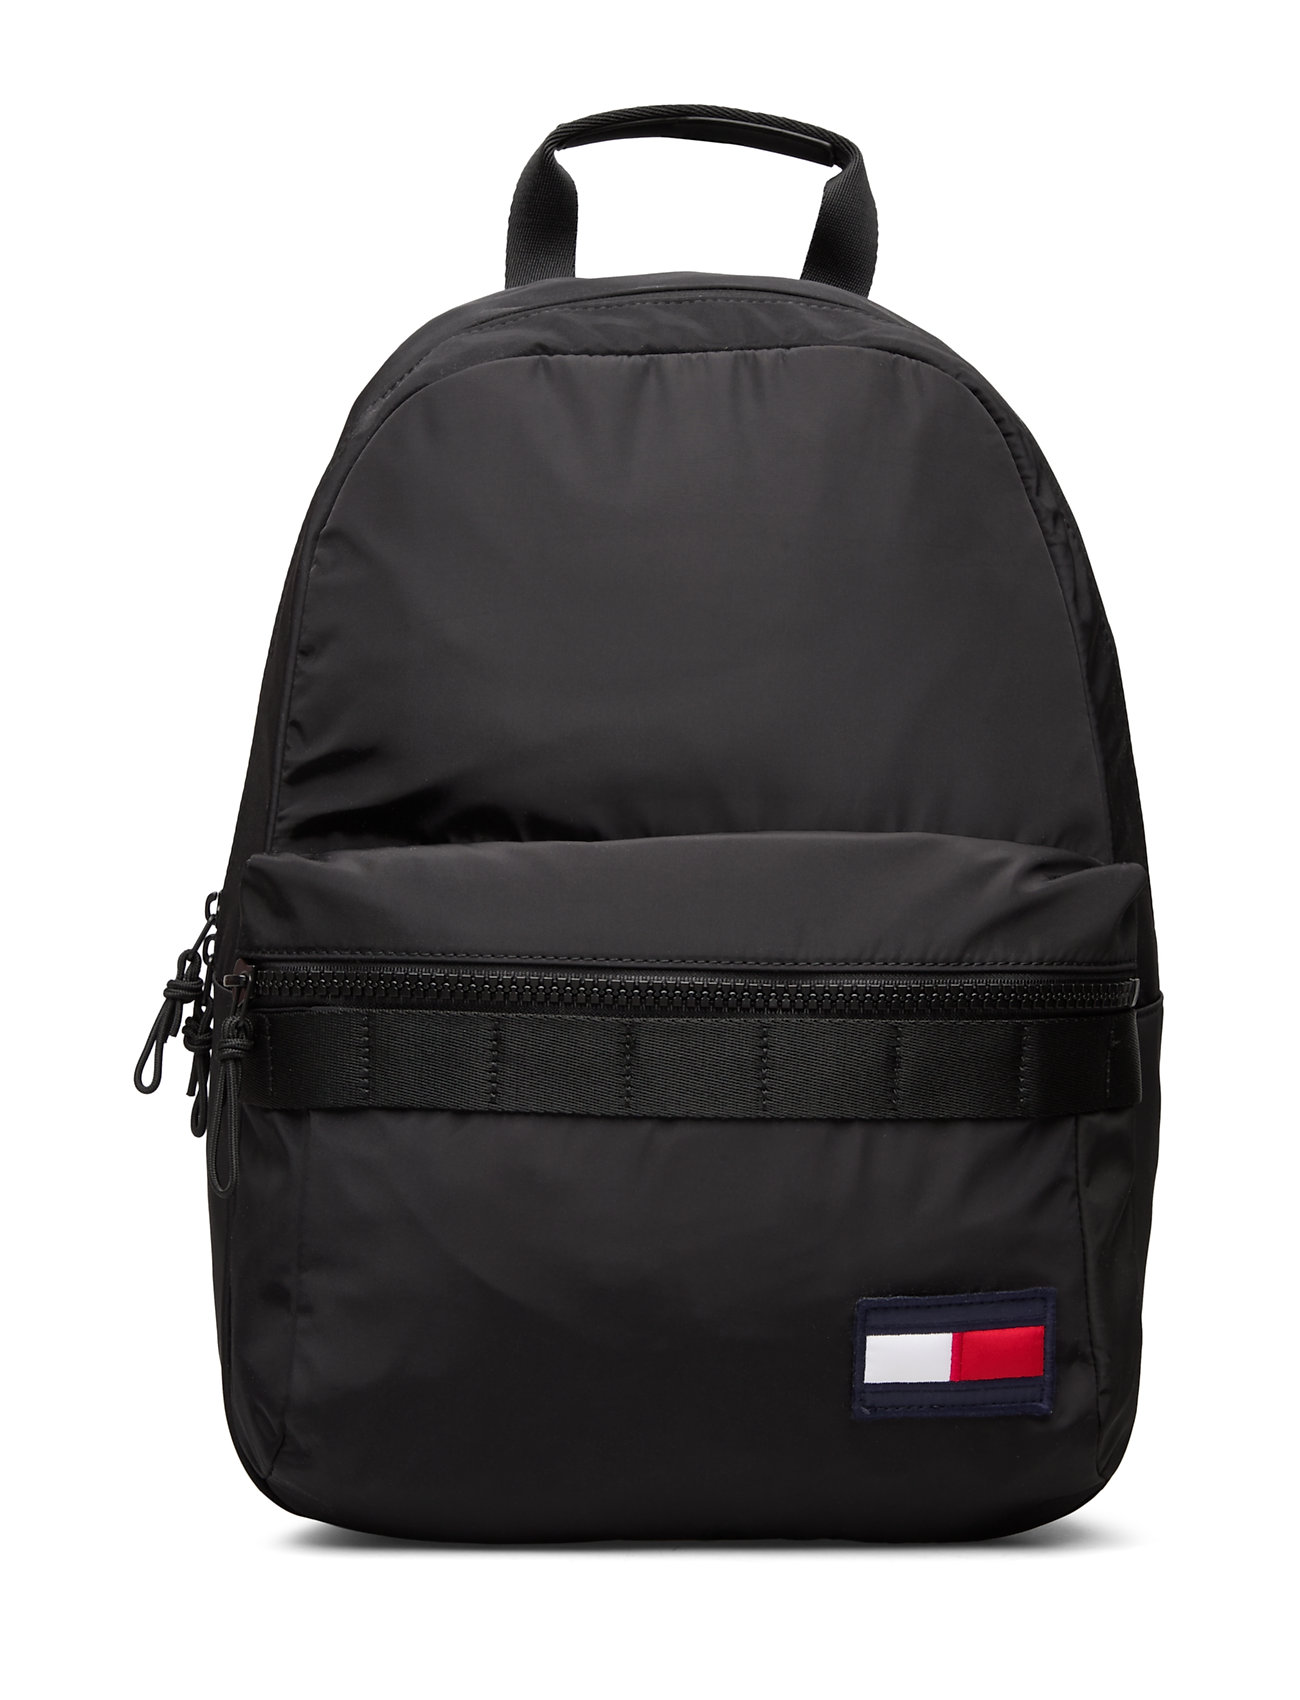 Tommy Hilfiger TOMMY BACKPACK - BLACK